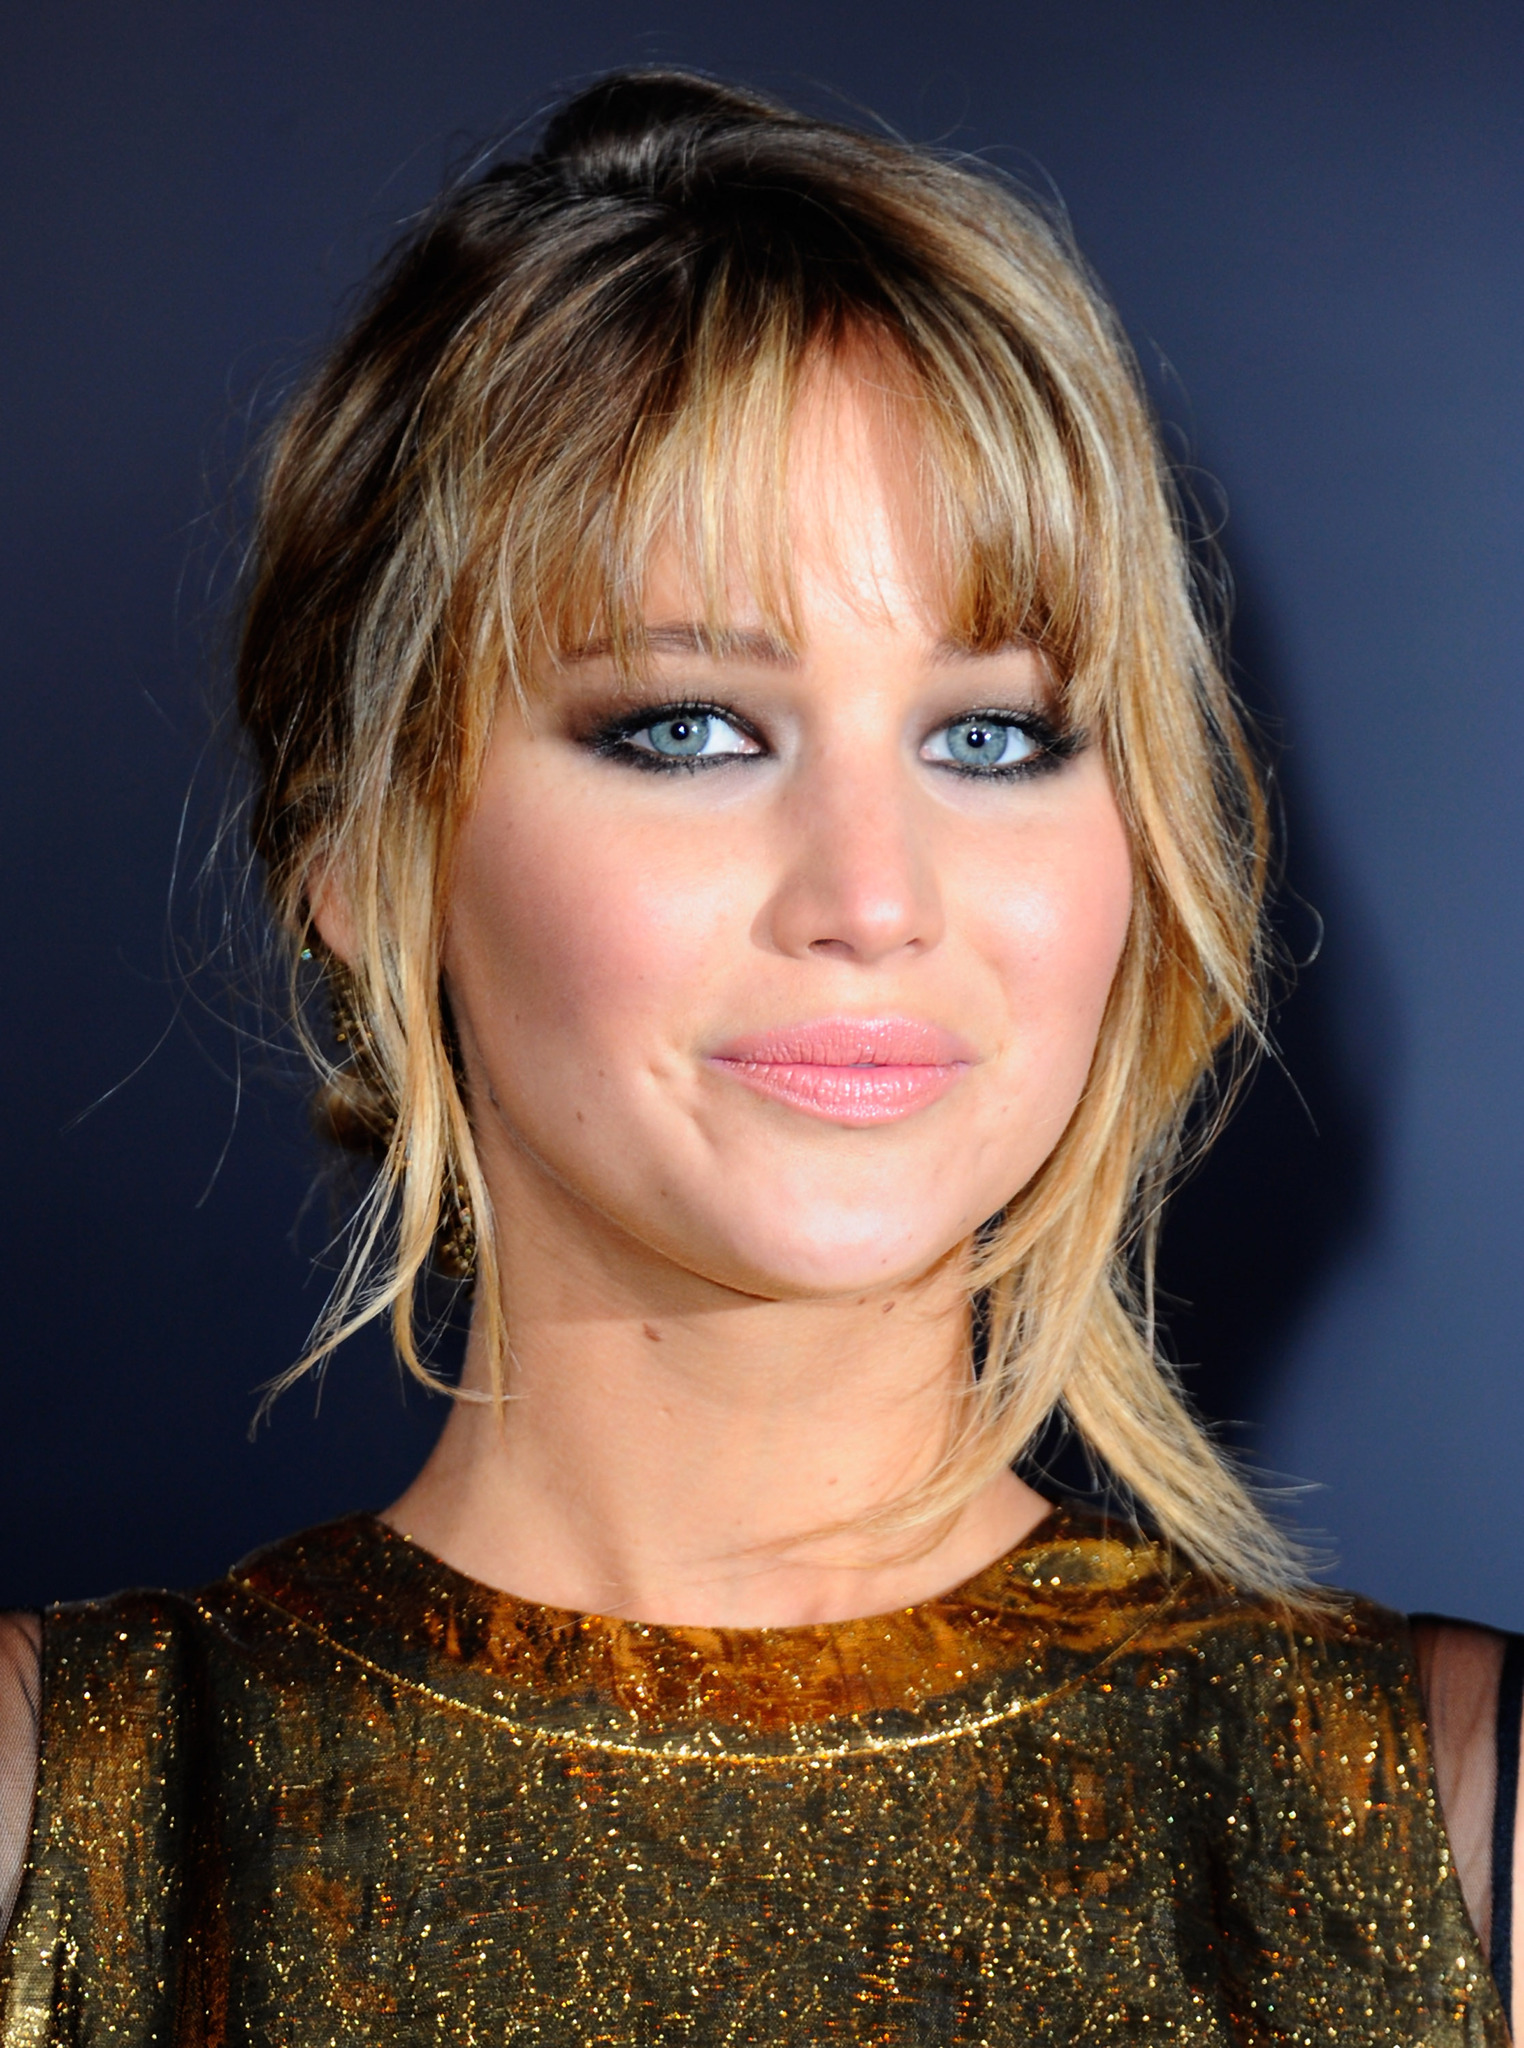 Jennifer Lawrence at an event for The Hunger Games (2012)